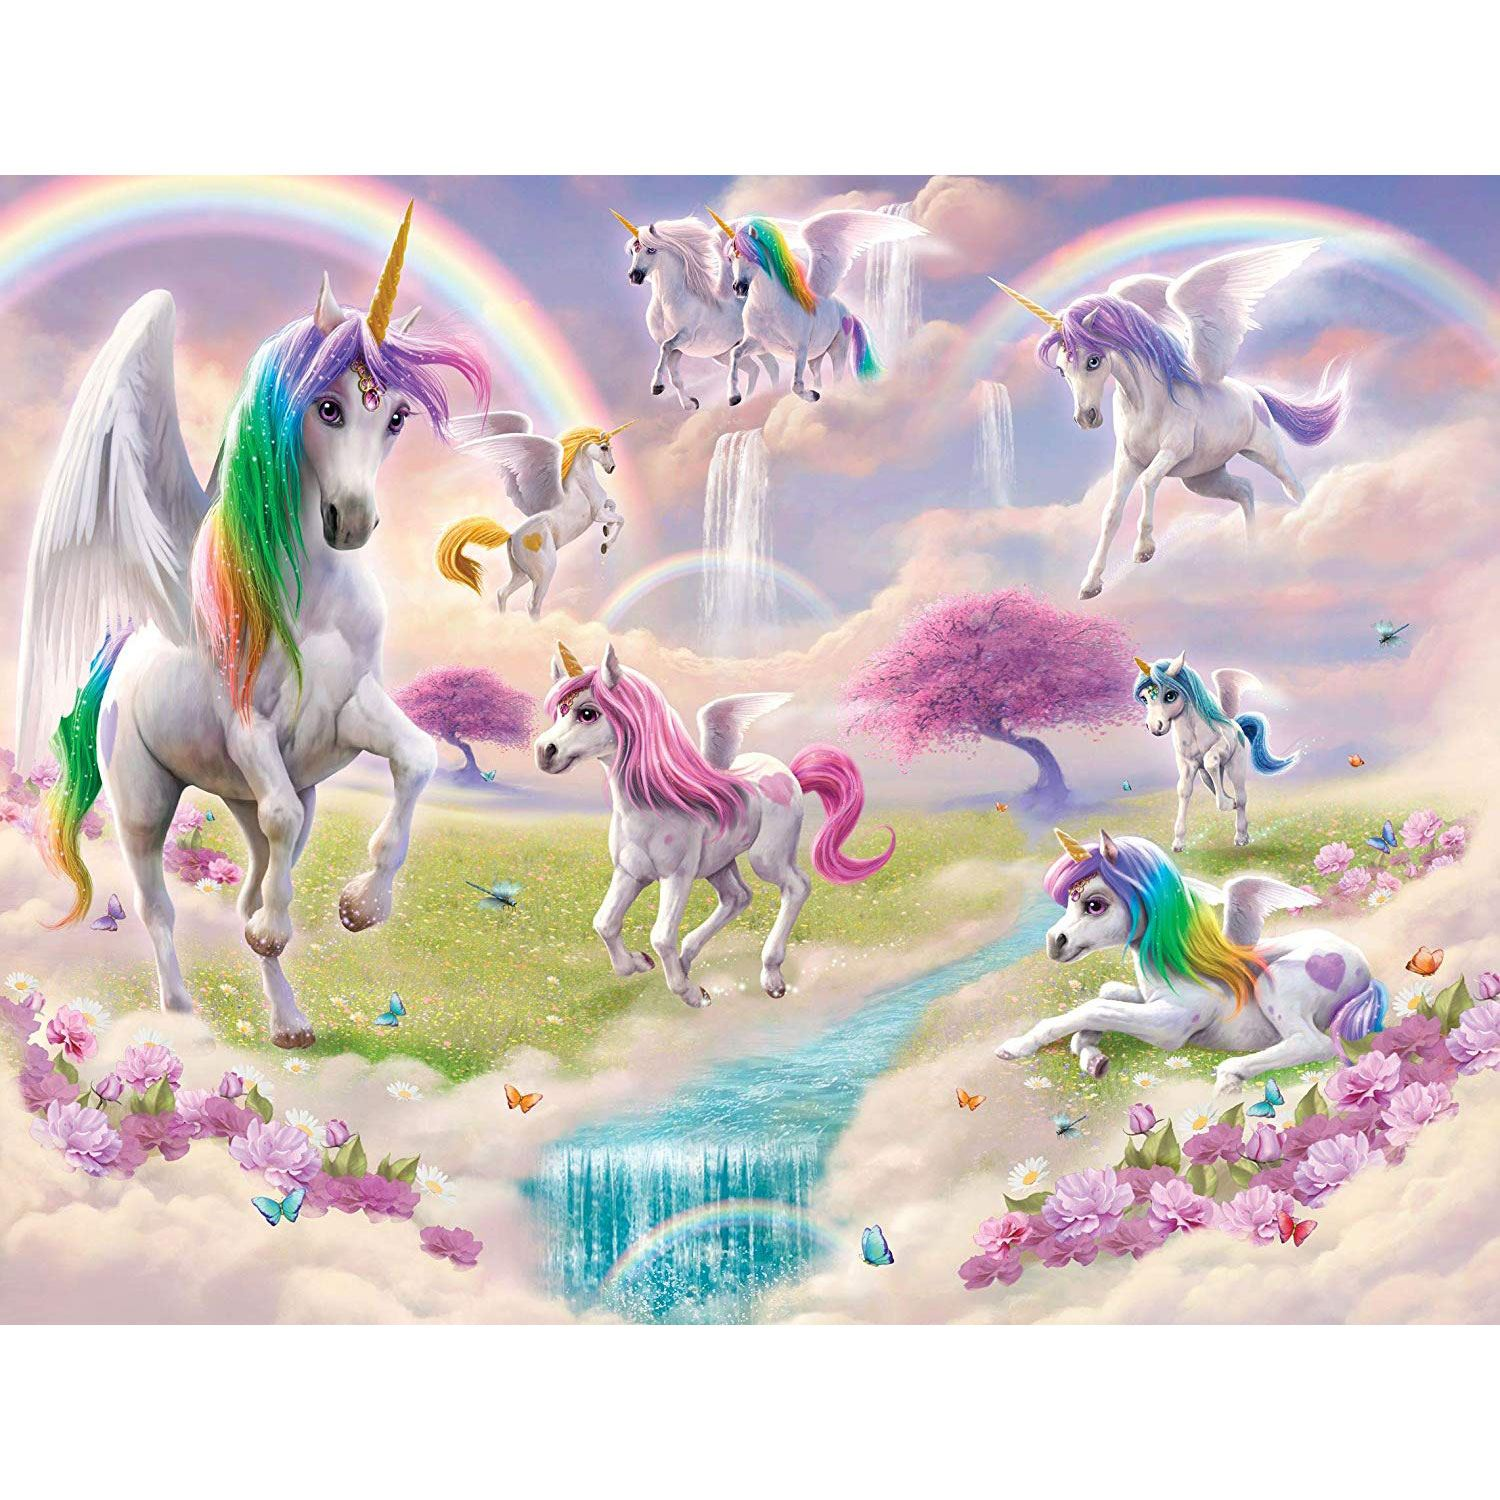 Walltastic Magical Unicorn Wall Mural Kids Room Decor 2